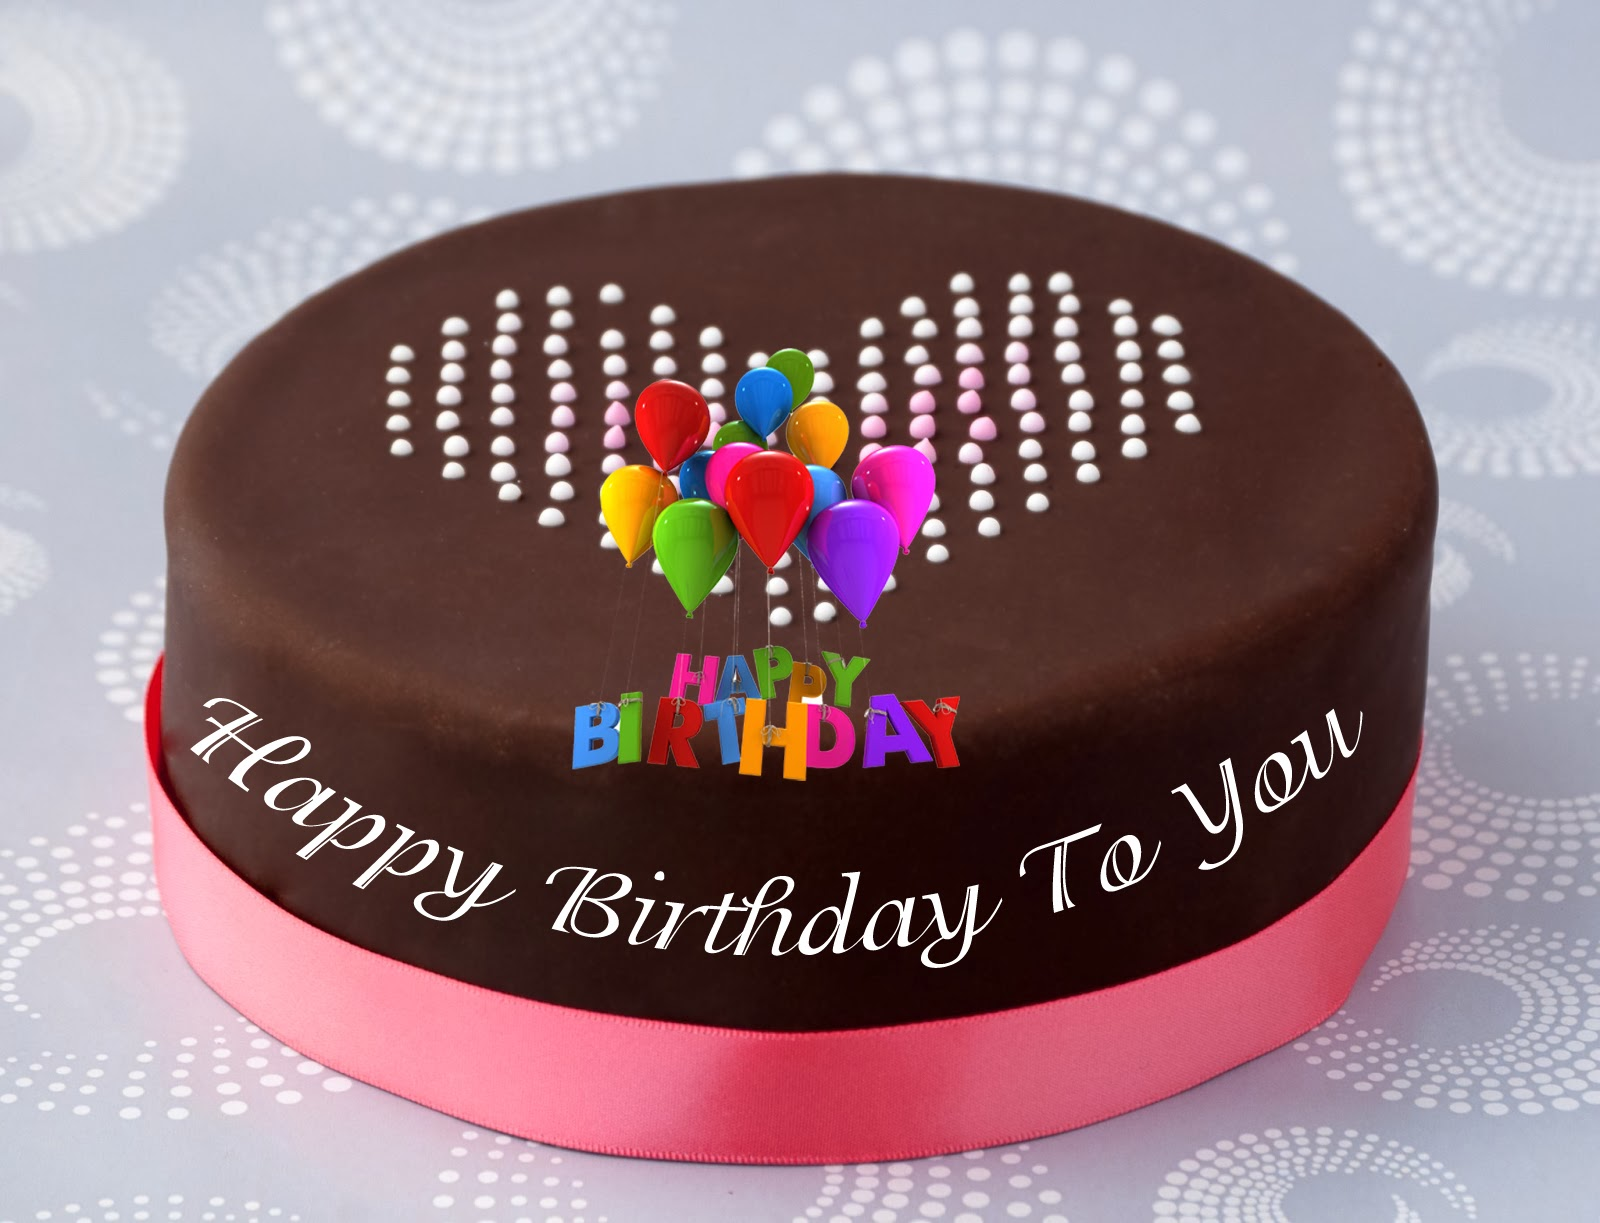 Free Download Hd Images Of Birthday Cake : Lovable Images: Happy Birthday Greetings free download ...